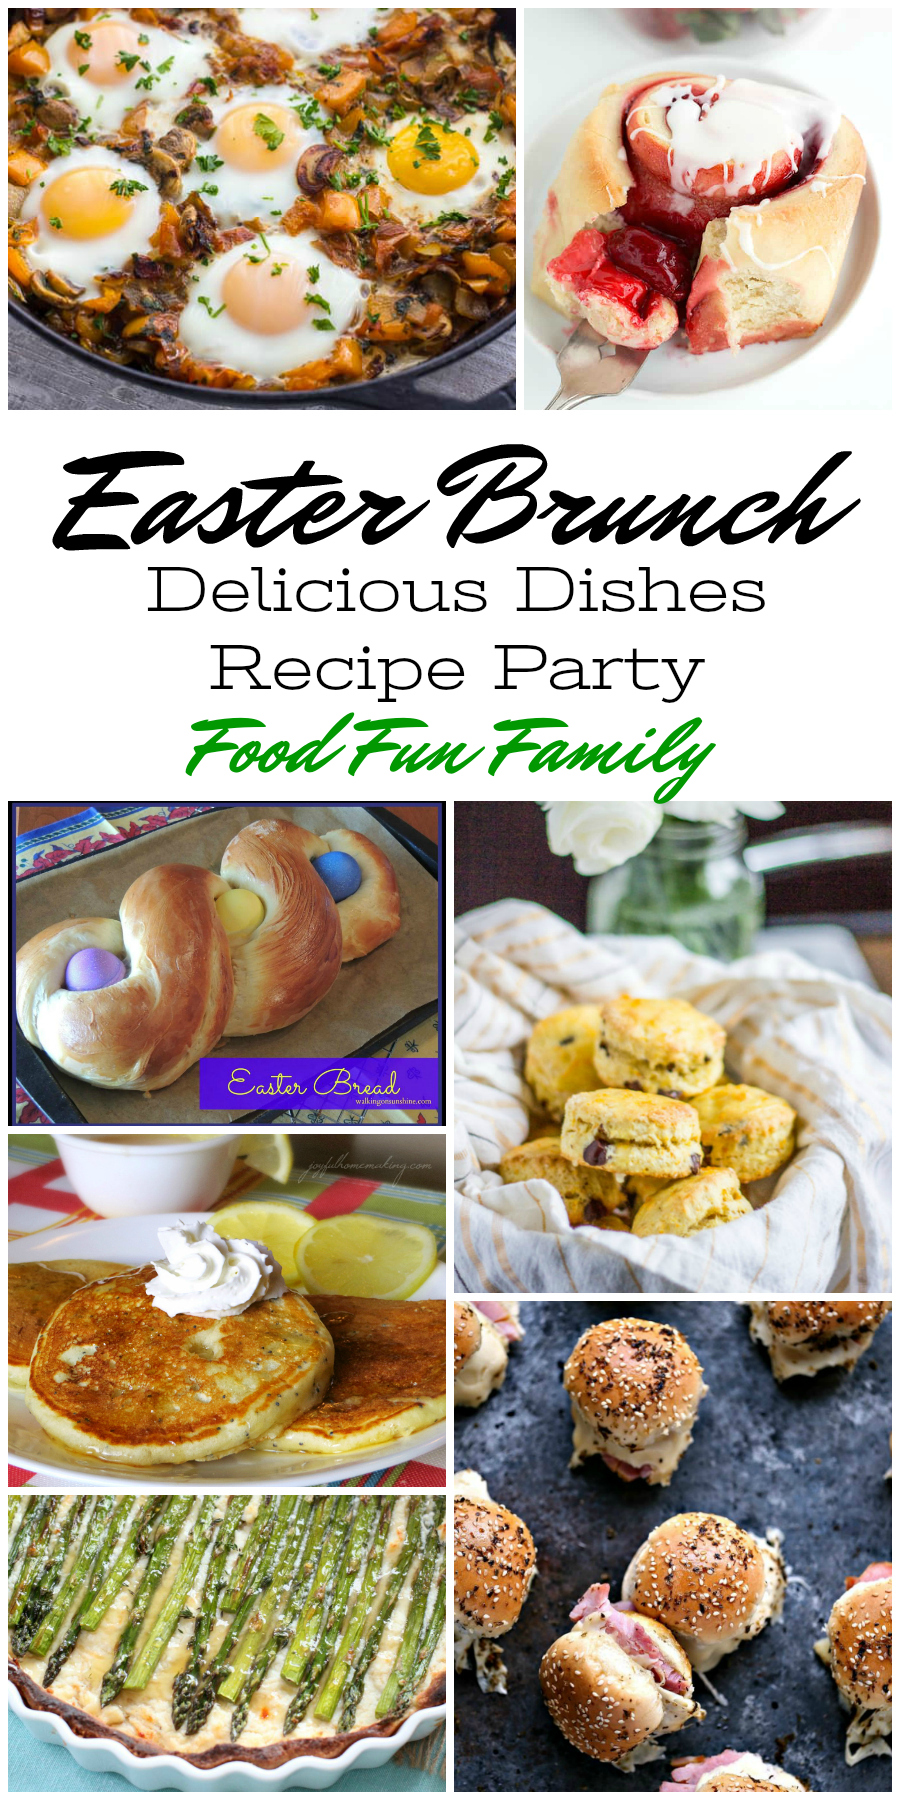 Brunch Ideas For Easter: Delicious Dishes Recipe Party #108